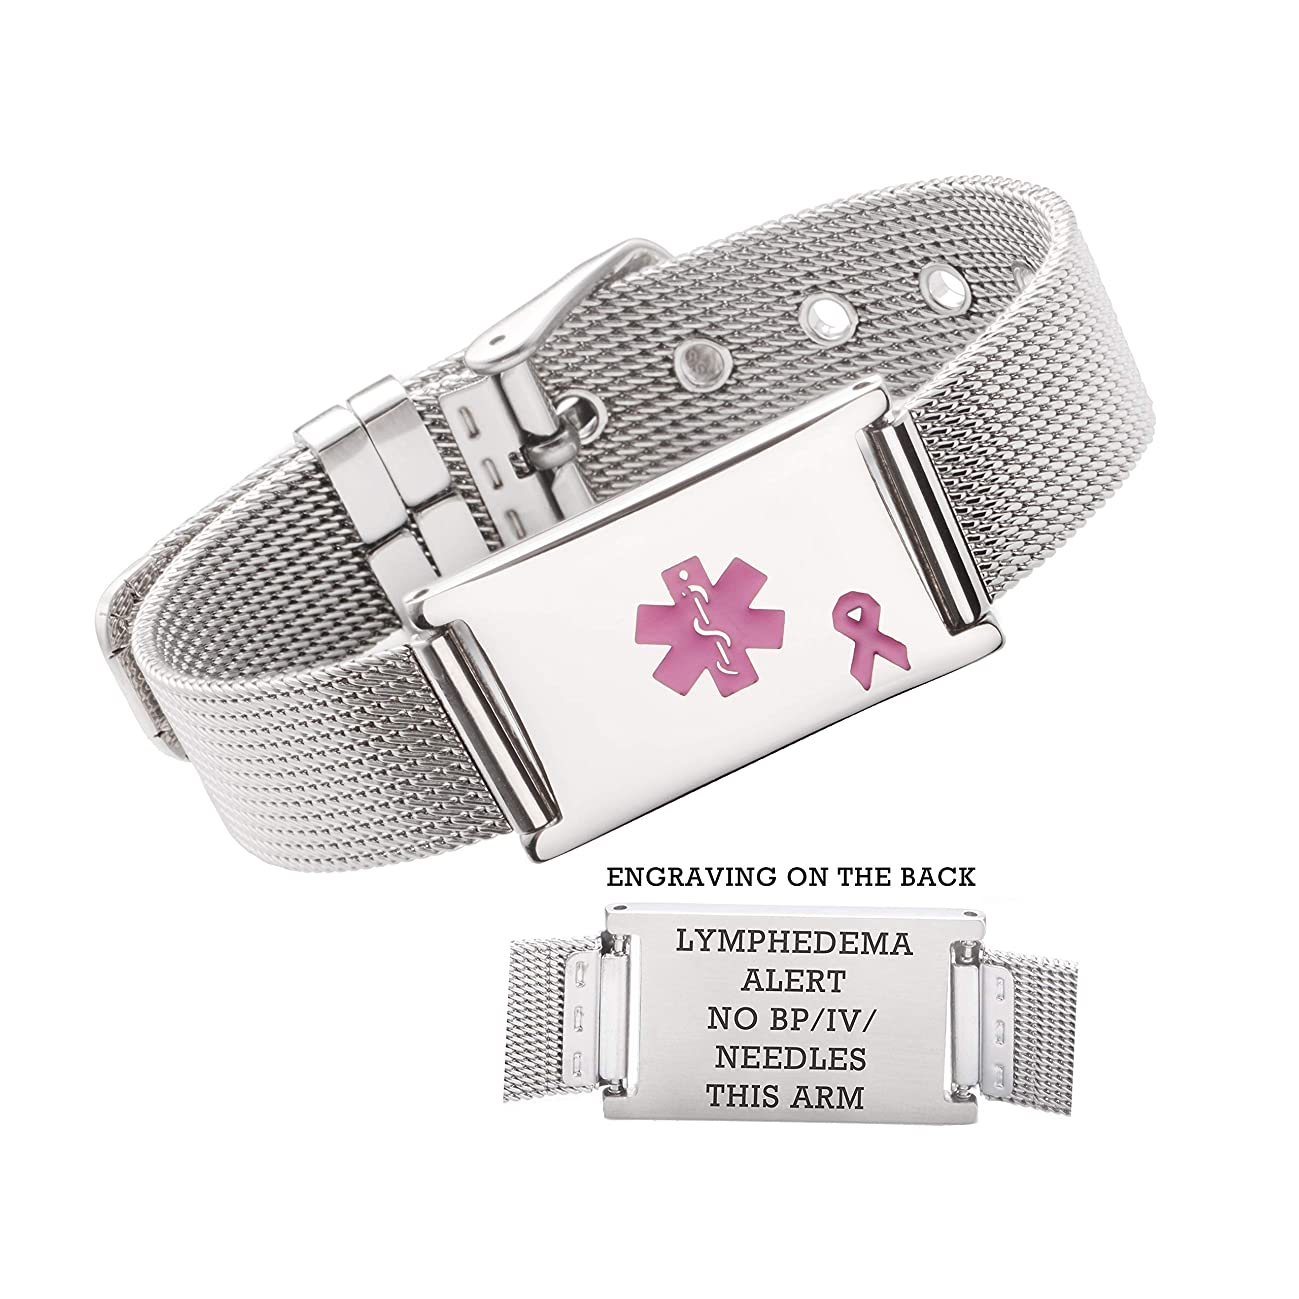 linnalove Lymphedema Alert No bp/iv/Needles This arm Stainless Steel Milanese Medical ID Alert Bracelet for Breast Cancer Adjustable